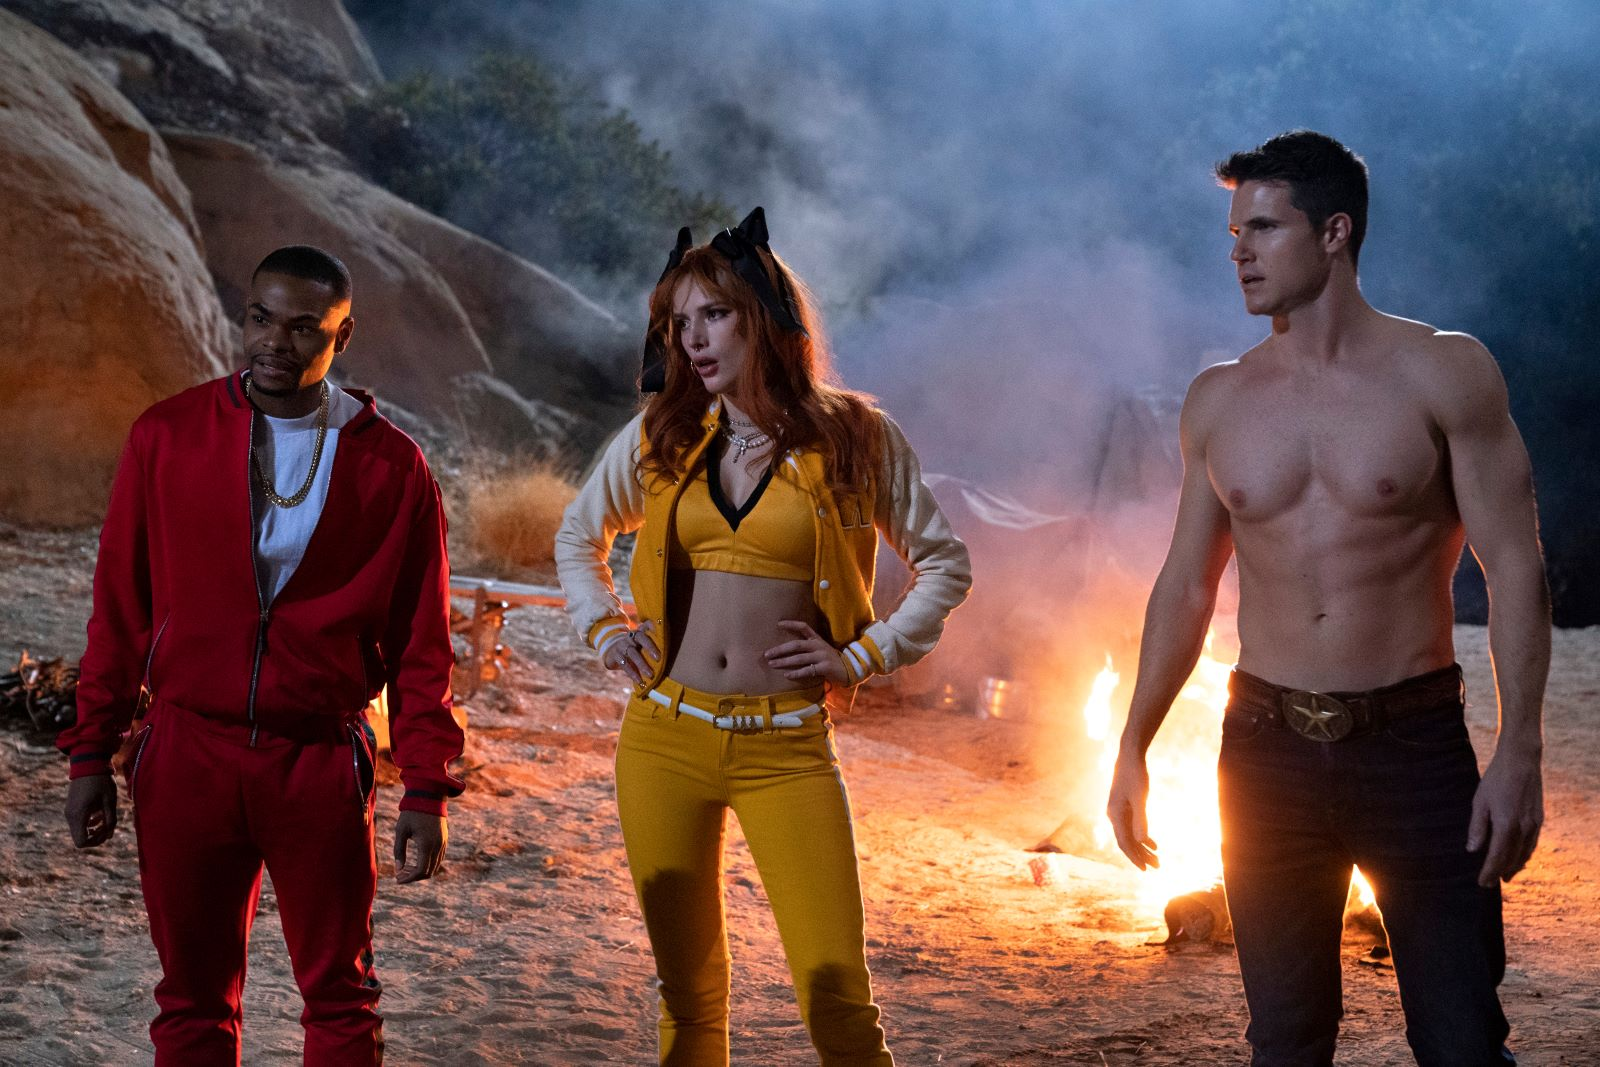 'The Babysitter: Killer Queen' (L To R) Andrew Bachelor, Bella Thorne, and Robbie Amell